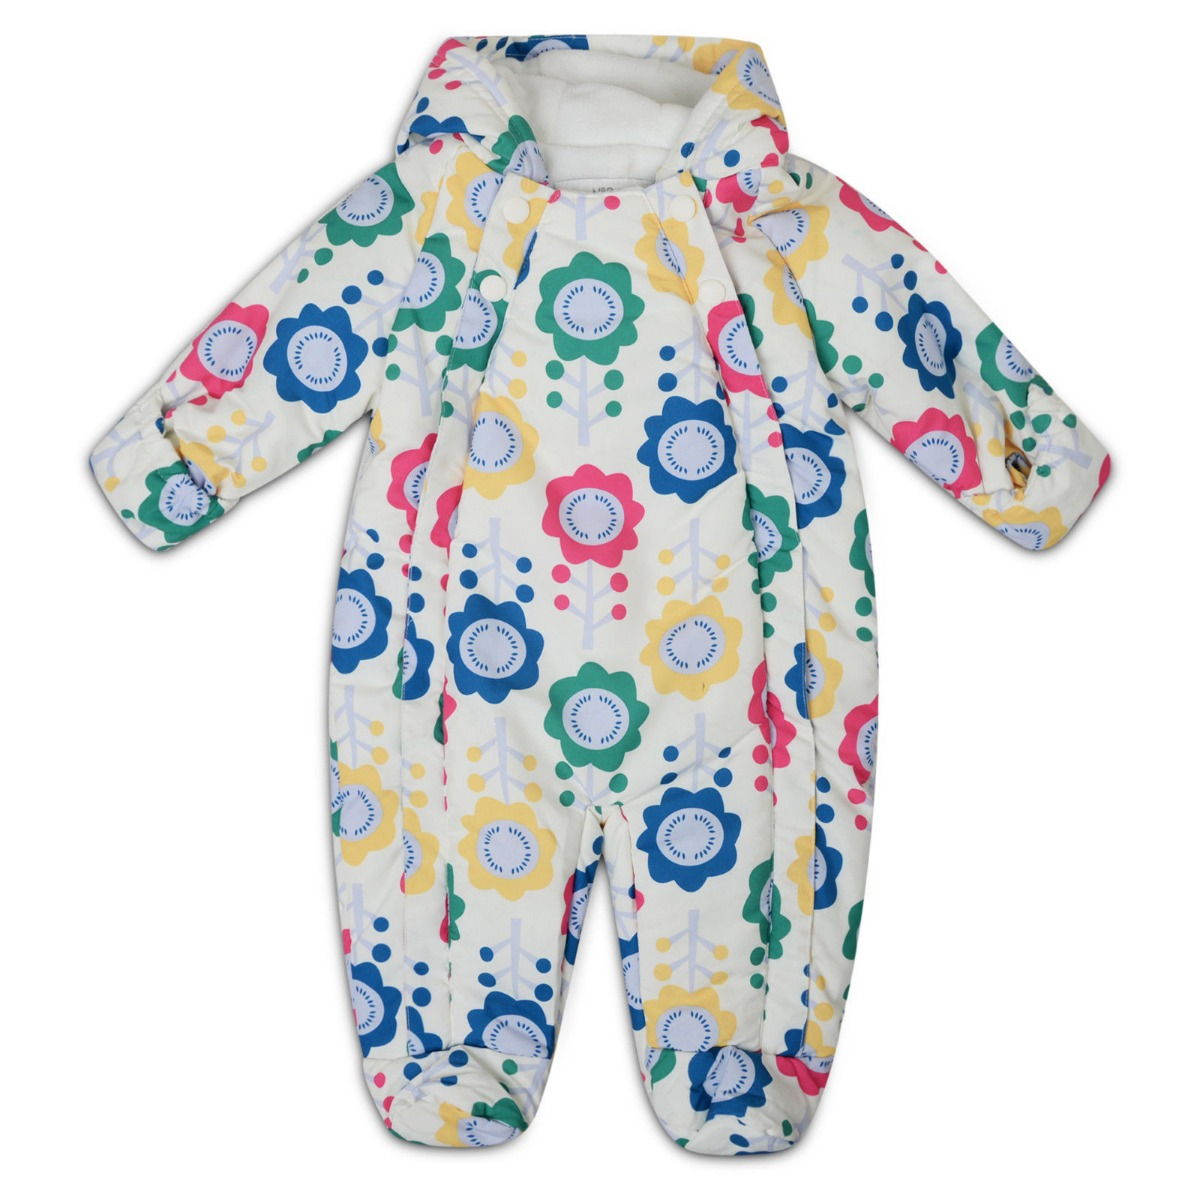 229d76a98 M&S Baby Snowsuit Newborn Floral All in One Pramsuit Ski Suit 0-3 3 ...